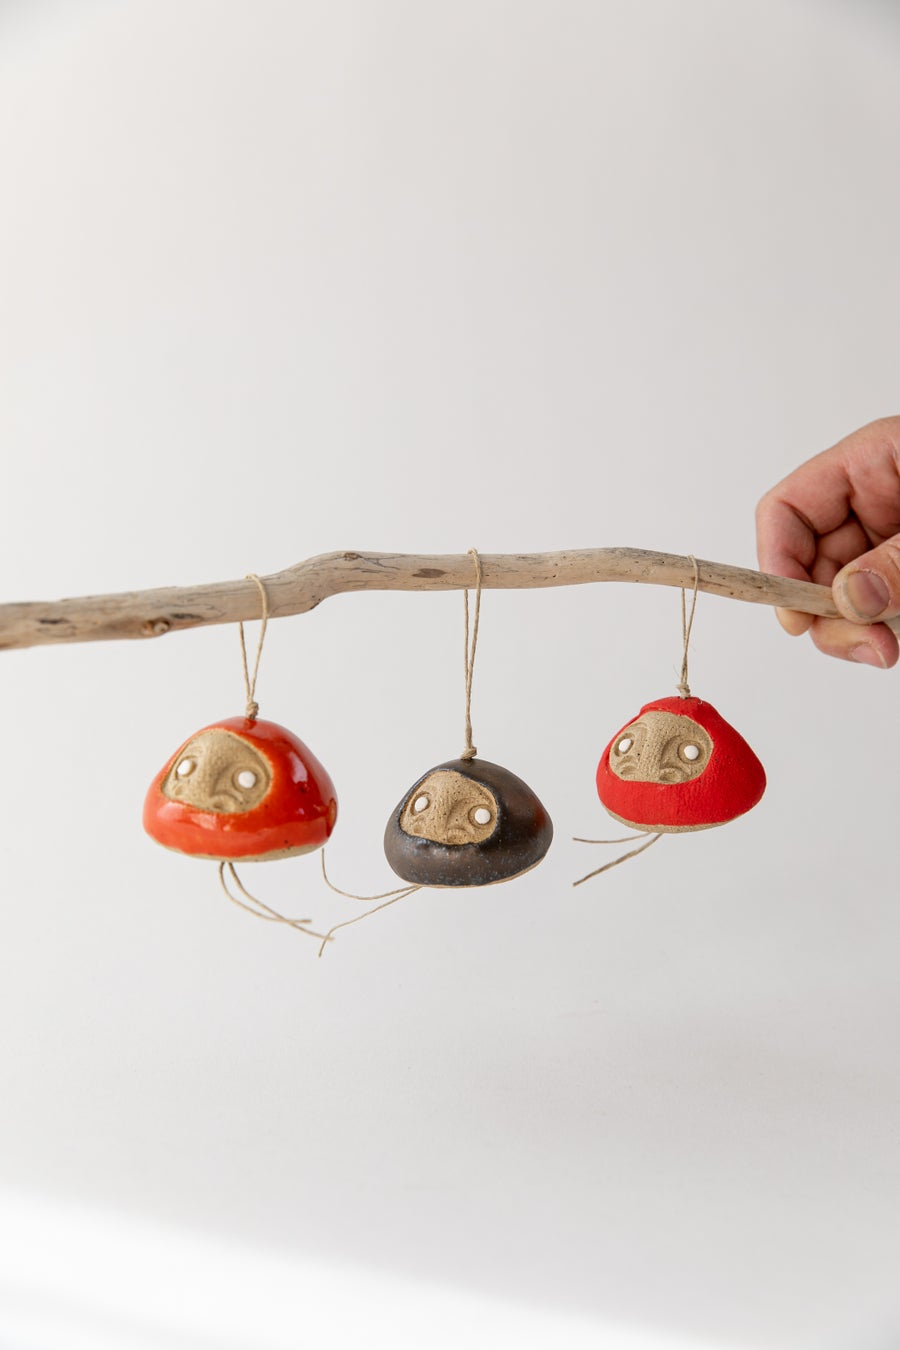 Image of Tiny Daruma Wishing Doll Ornament